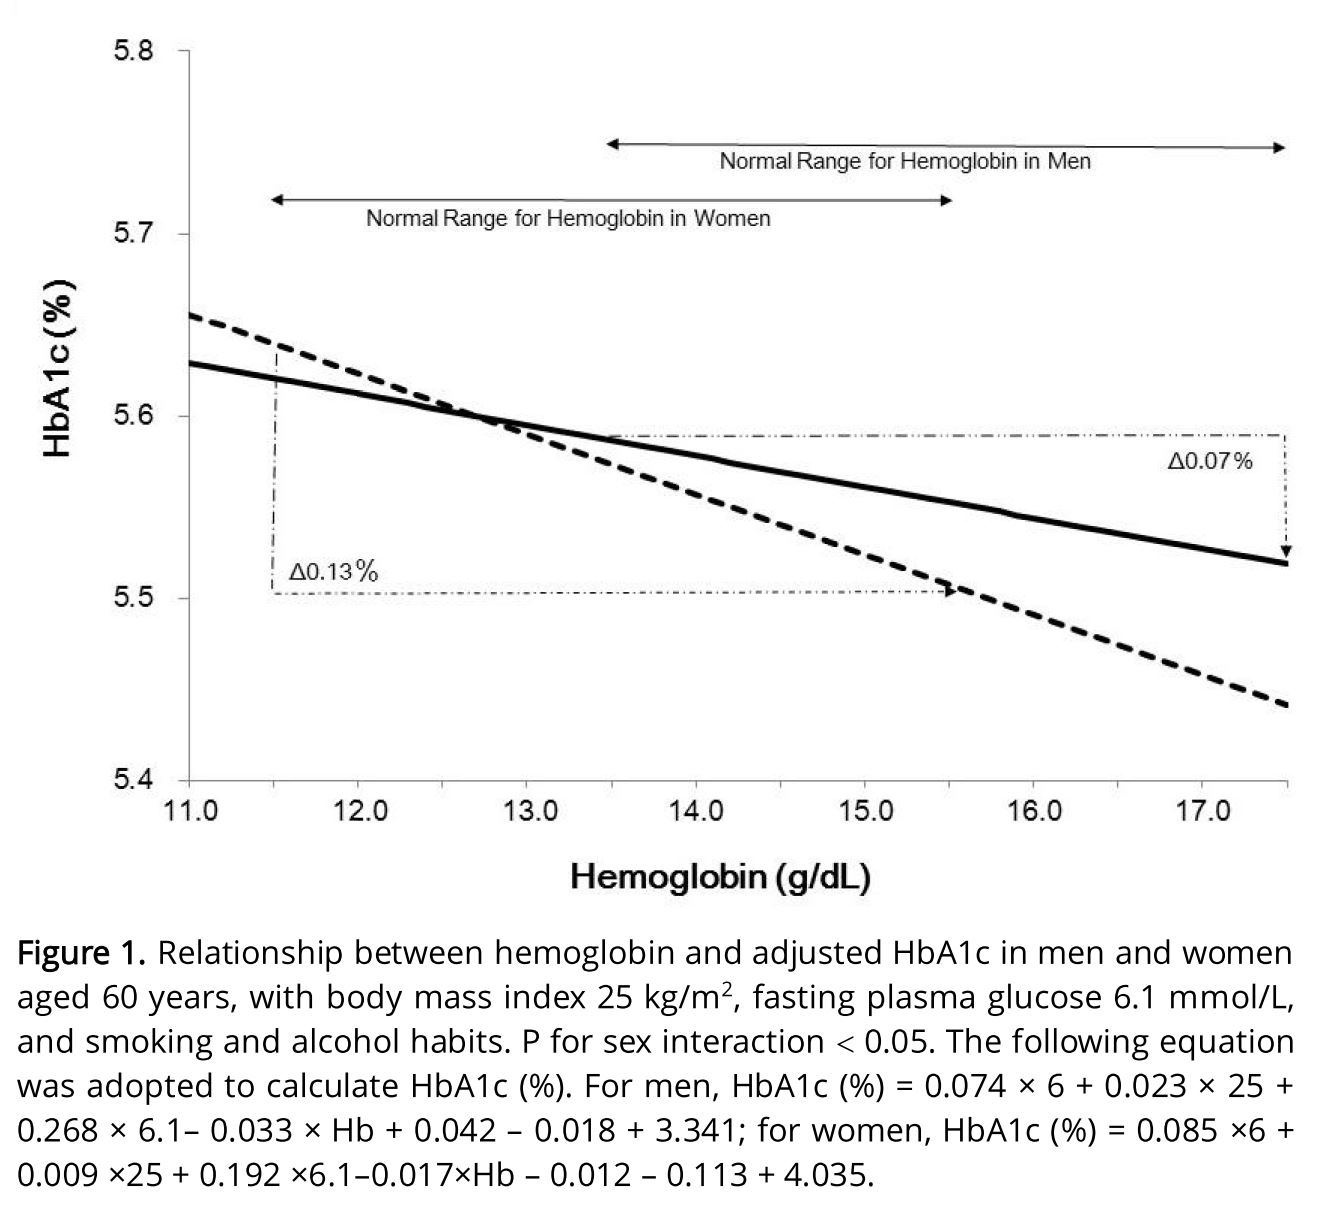 Effect of Hemoglobin Levels and Sex on HbA1c Levels among Japanese Population